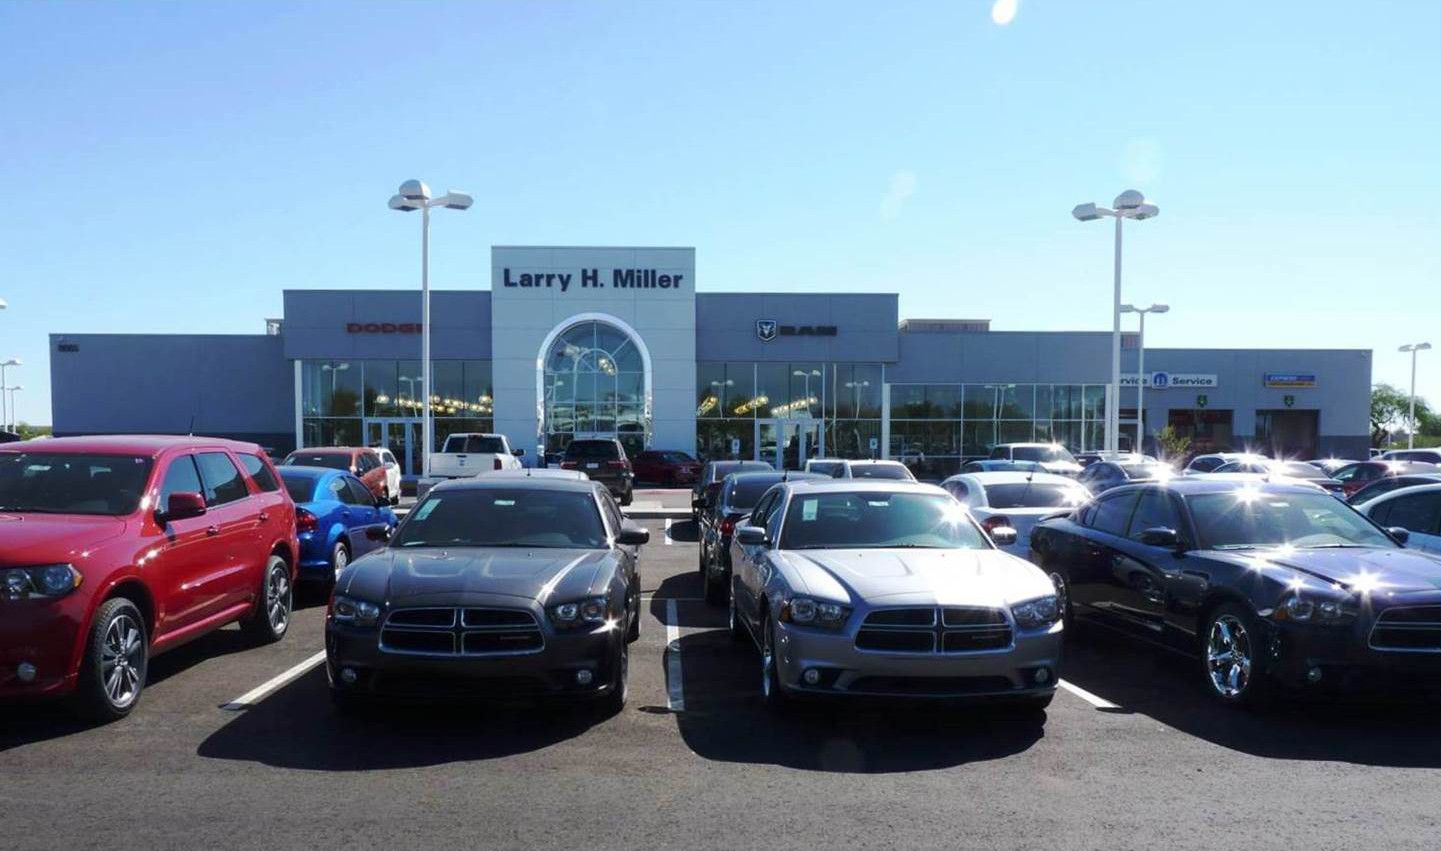 Jeep Dealers In Albuquerque Jpeg http//carimagescolay